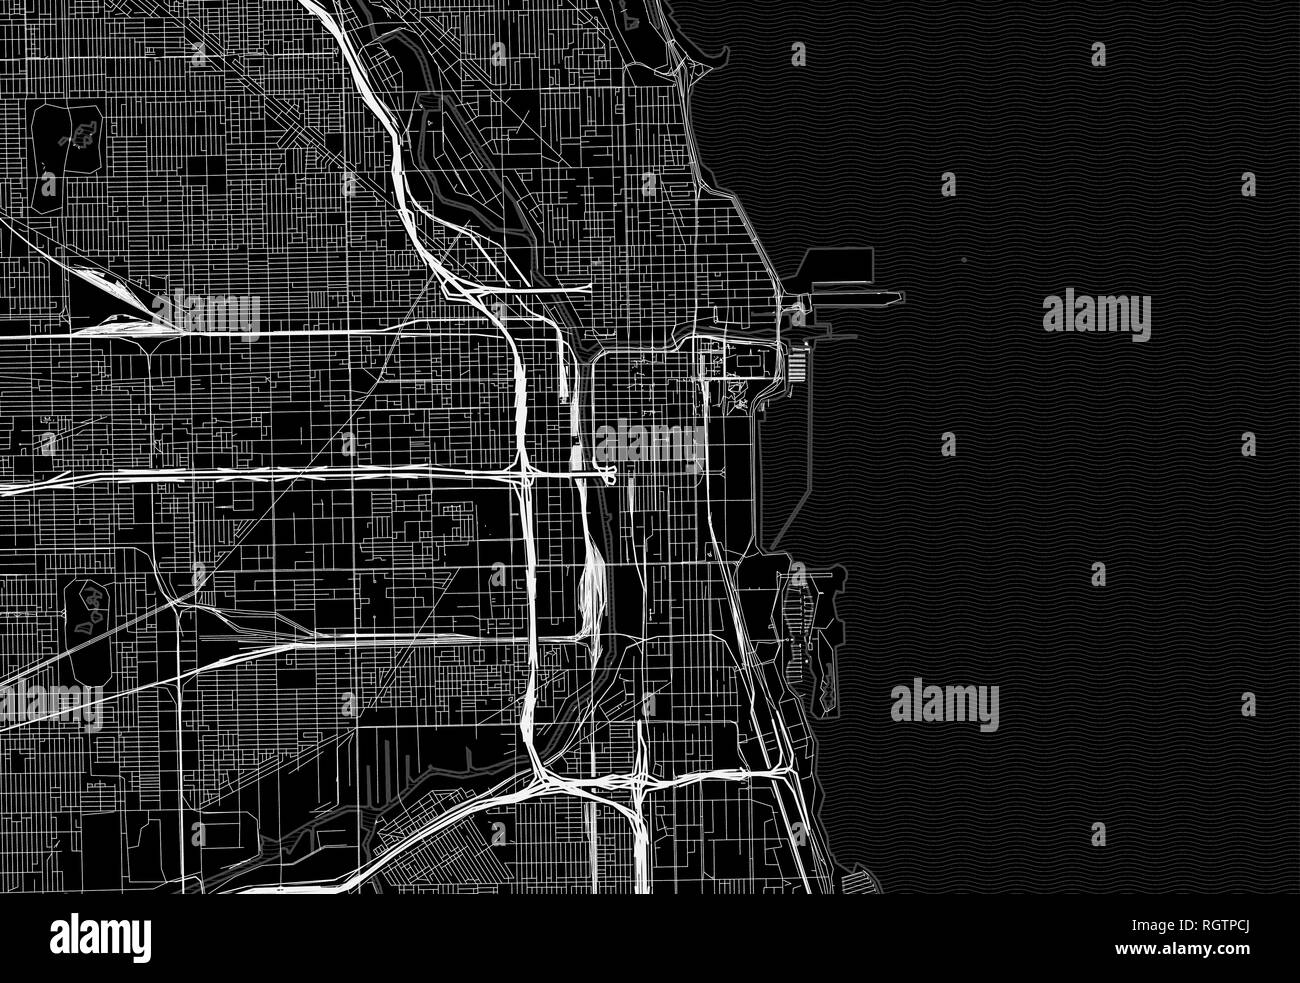 Black map of downtown Chicago, U.S.A. This vector artmap is created as a decorative background or a unique travel sign. - Stock Vector